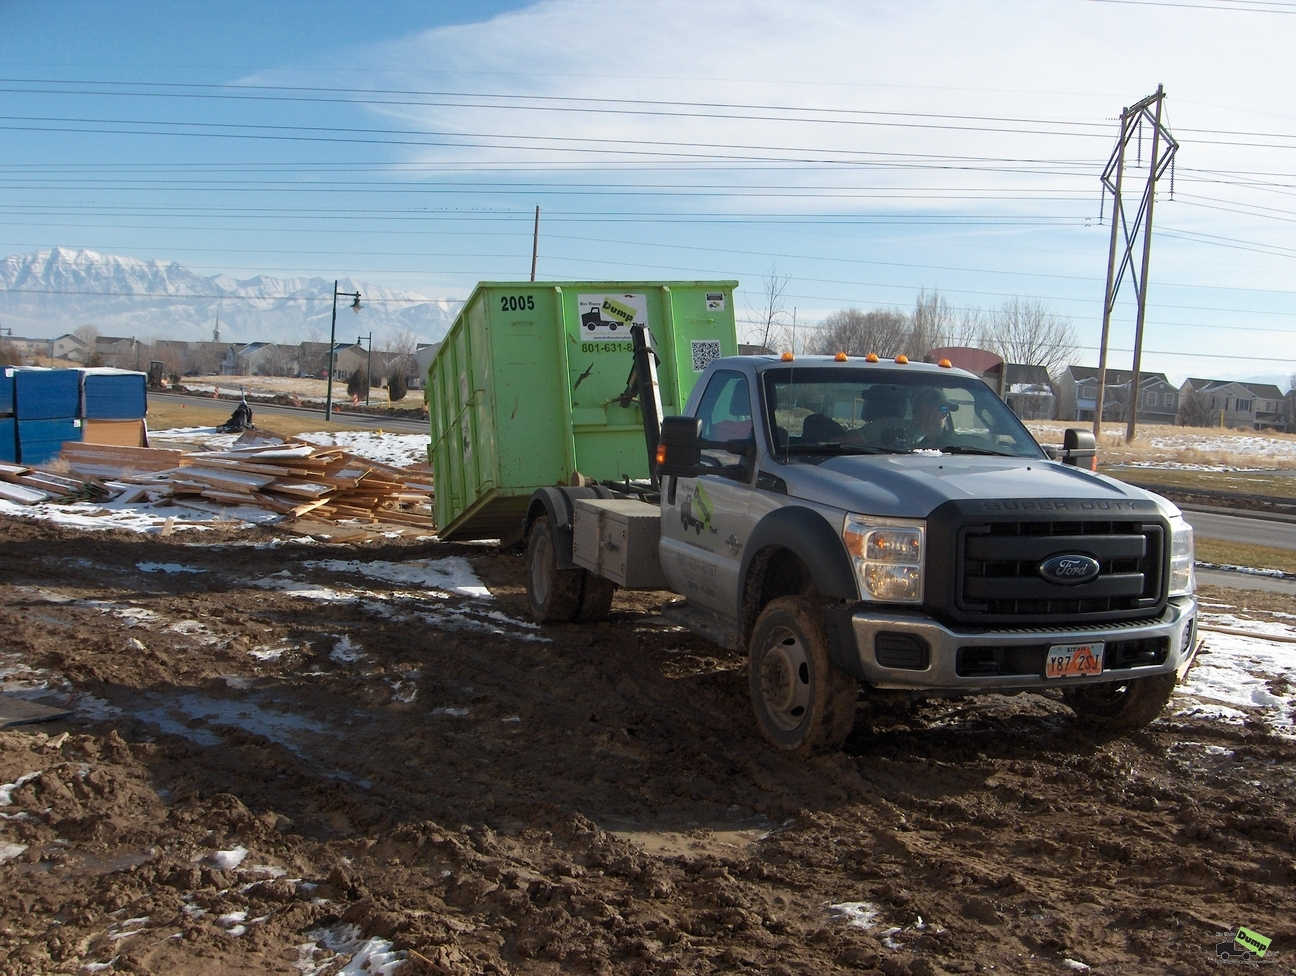 Salt Lake City Residential Dumpster Service